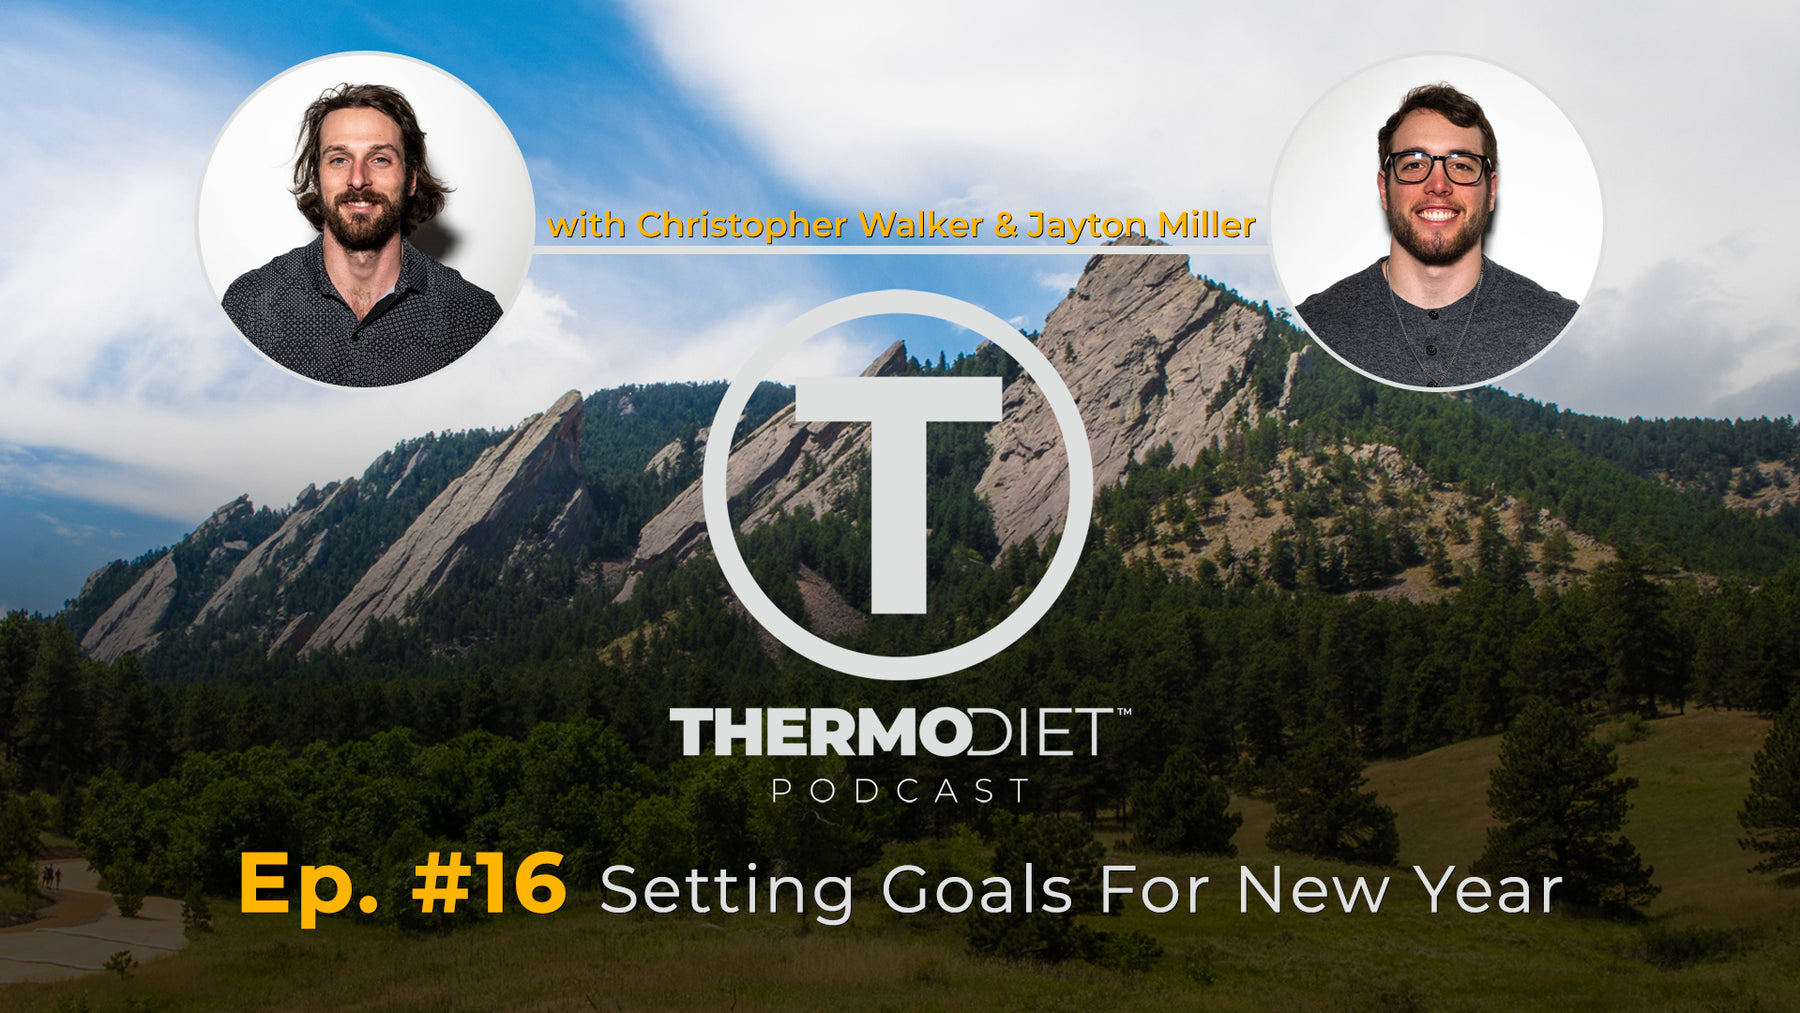 Thermo Diet Podcast Episode 16 - How To Set Goals for 2020